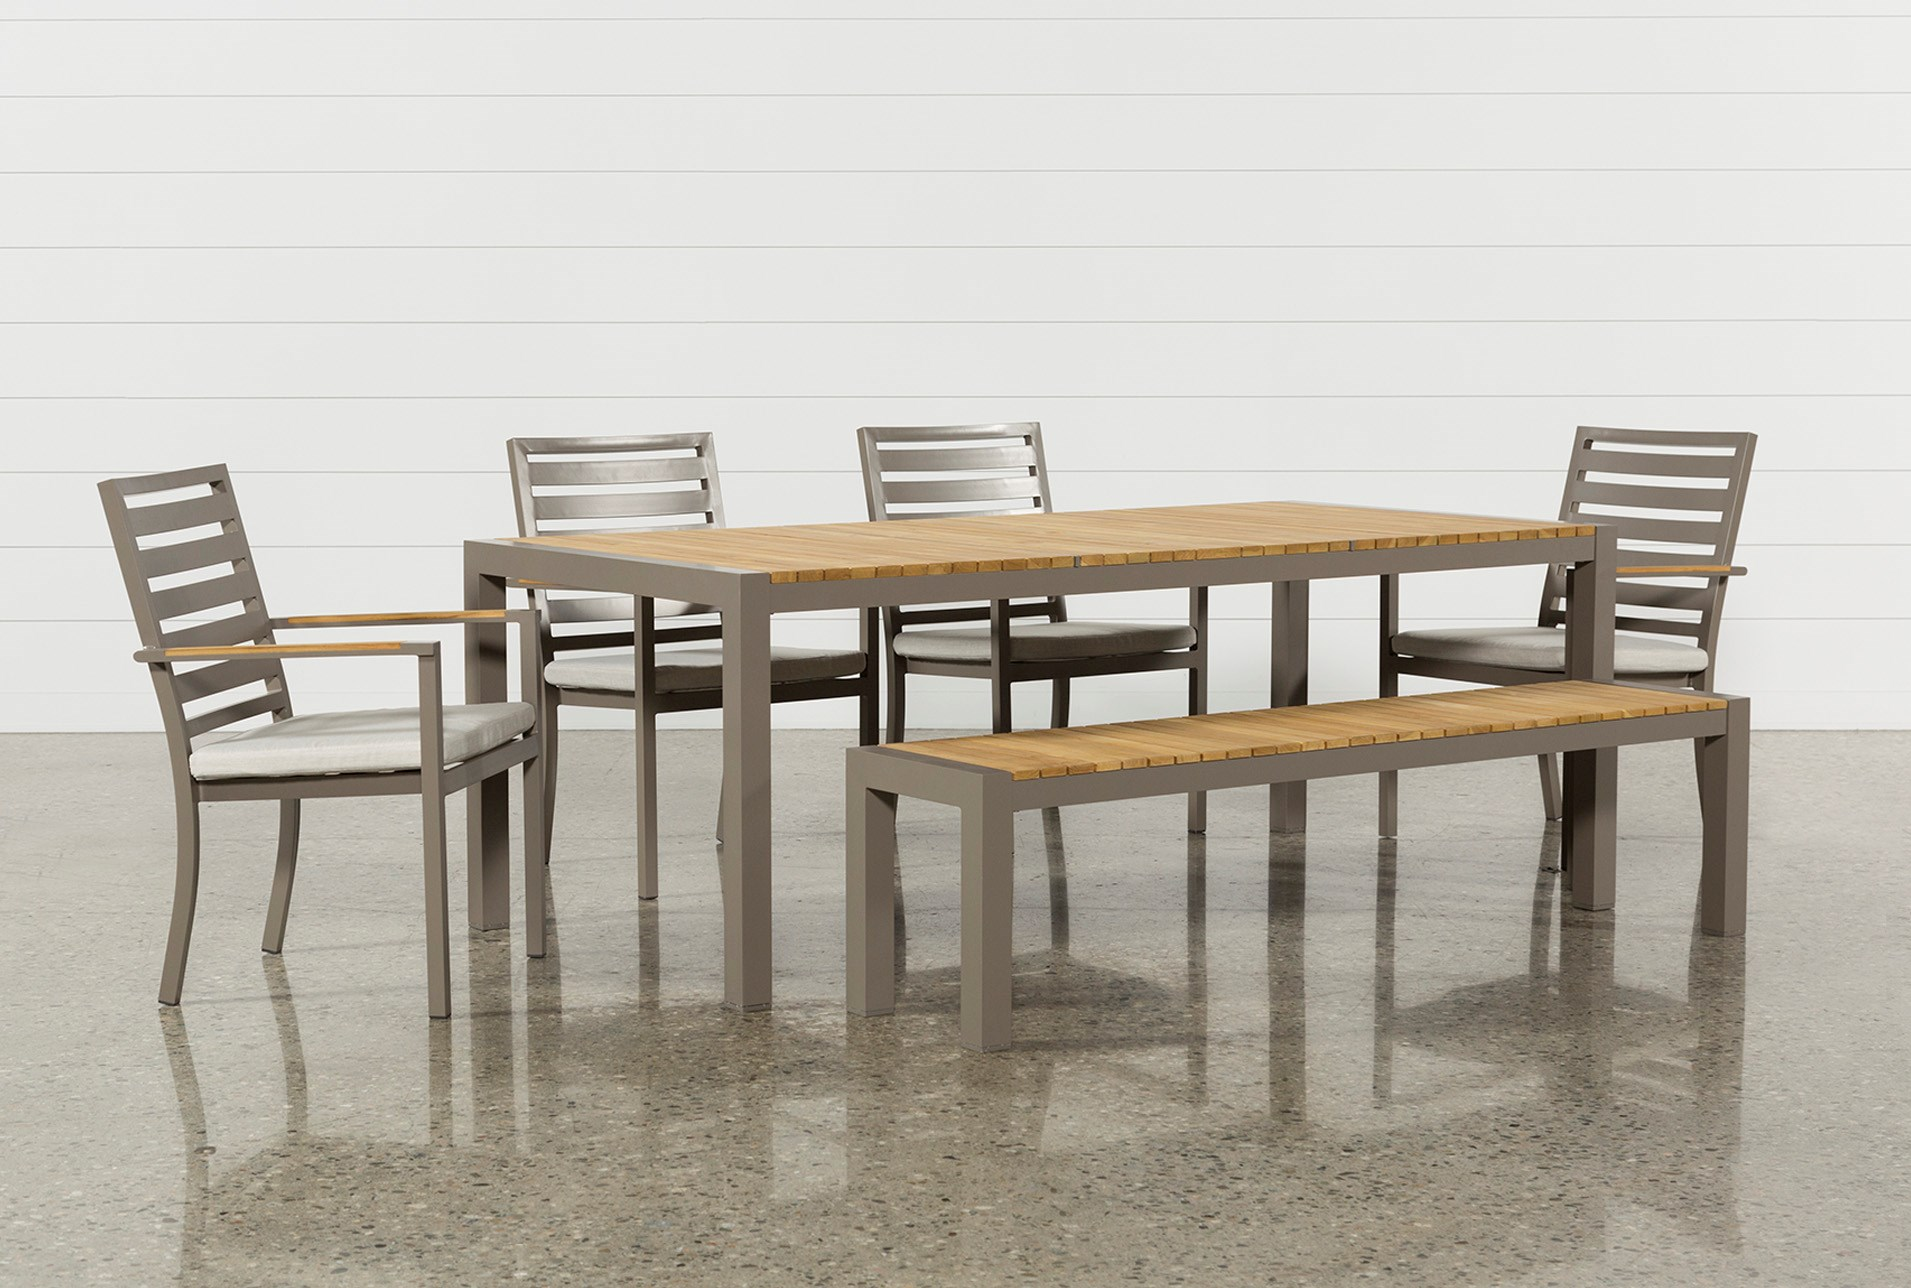 Outdoor Brasilia Teak Dining Table With 4 Chairs And 1 Bench ...